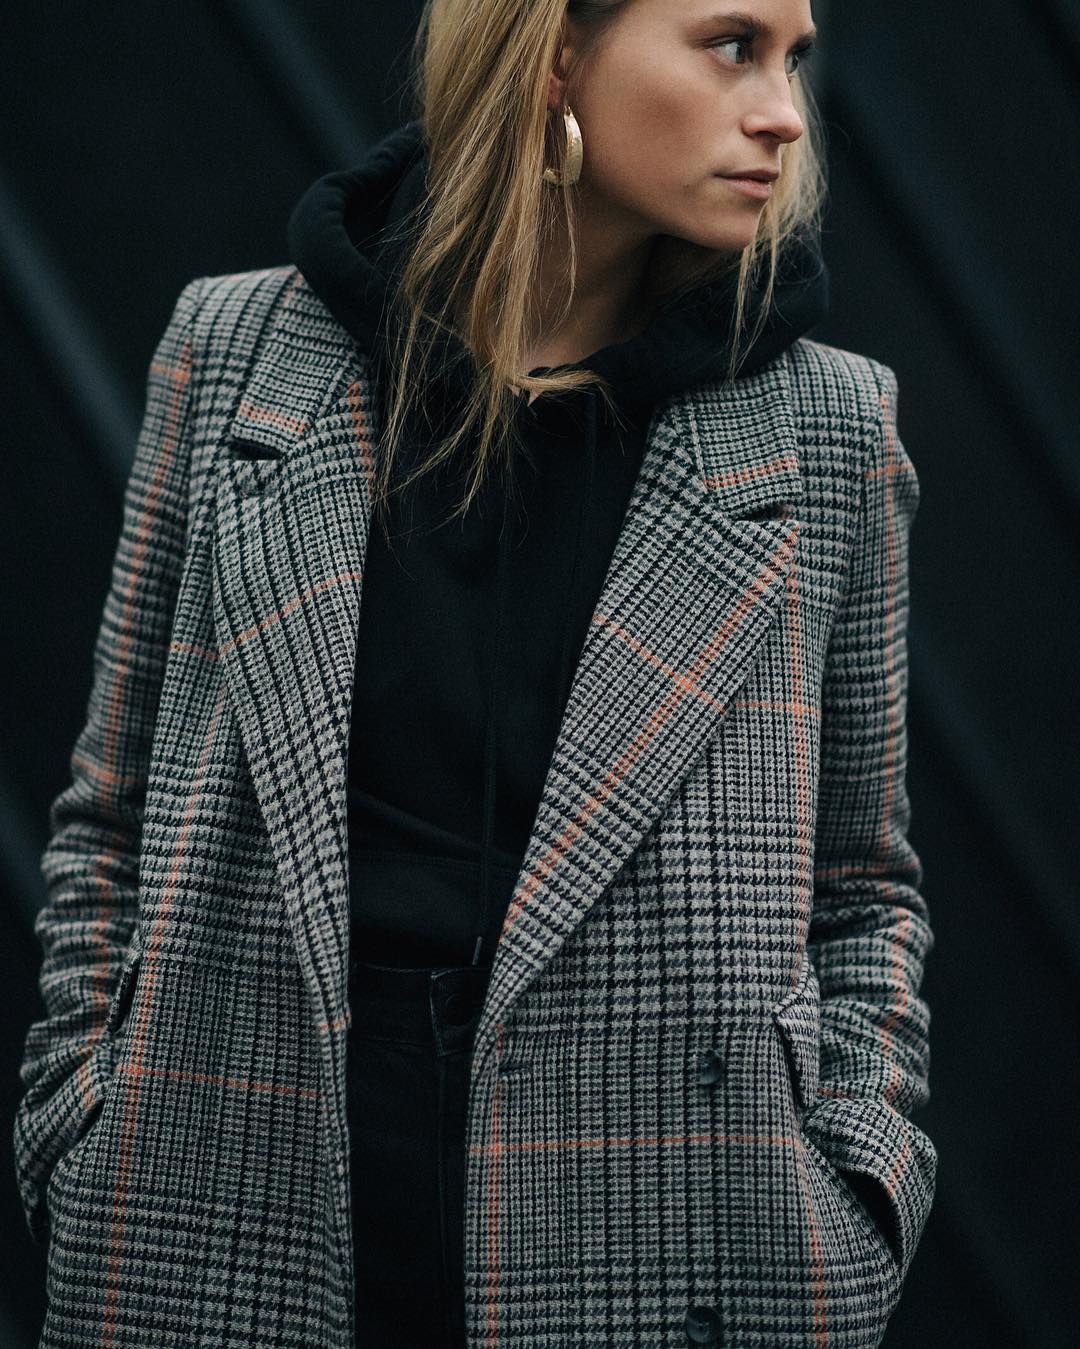 Plaid Coats Are Making a Huge Comeback for2017 Plaid Coats Are Making a Huge Comeback for2017 new foto